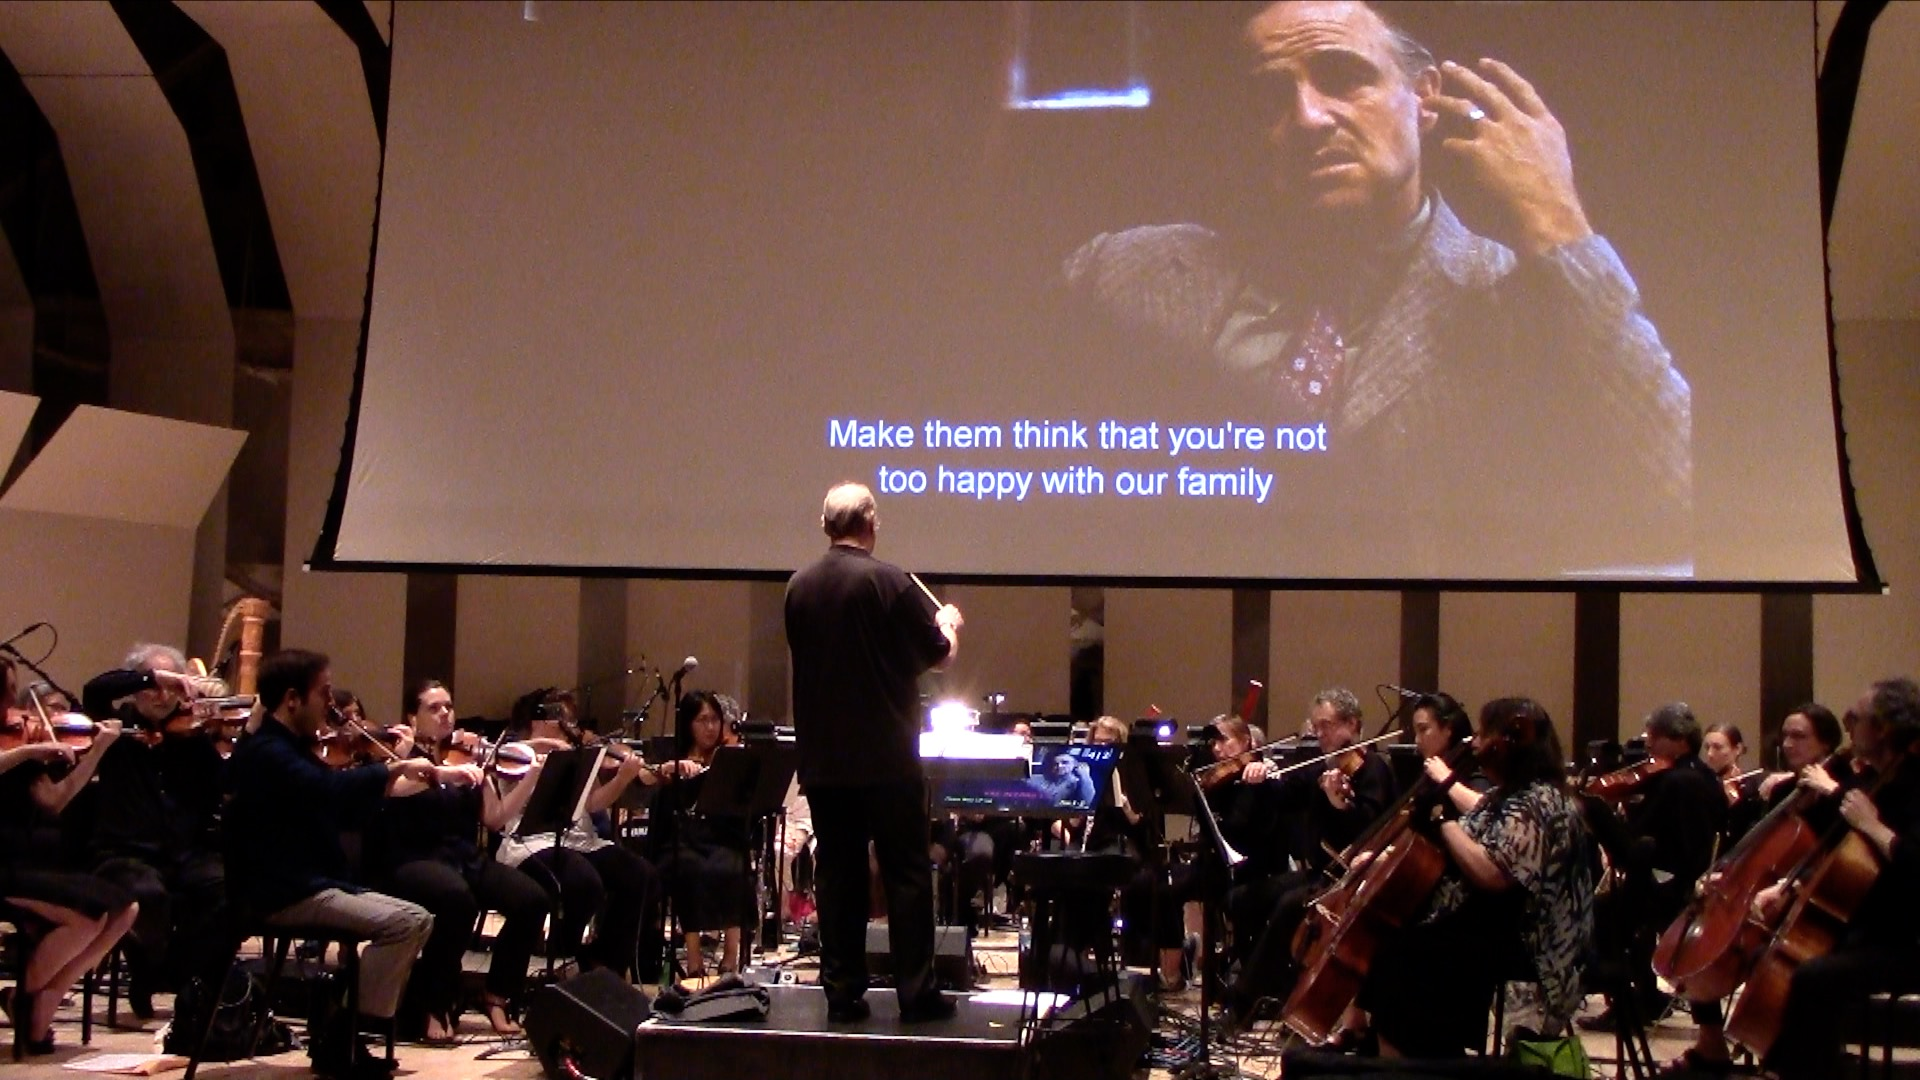 The Godfather Movie with Live Orchestra at the Tilles Center at LIU Post